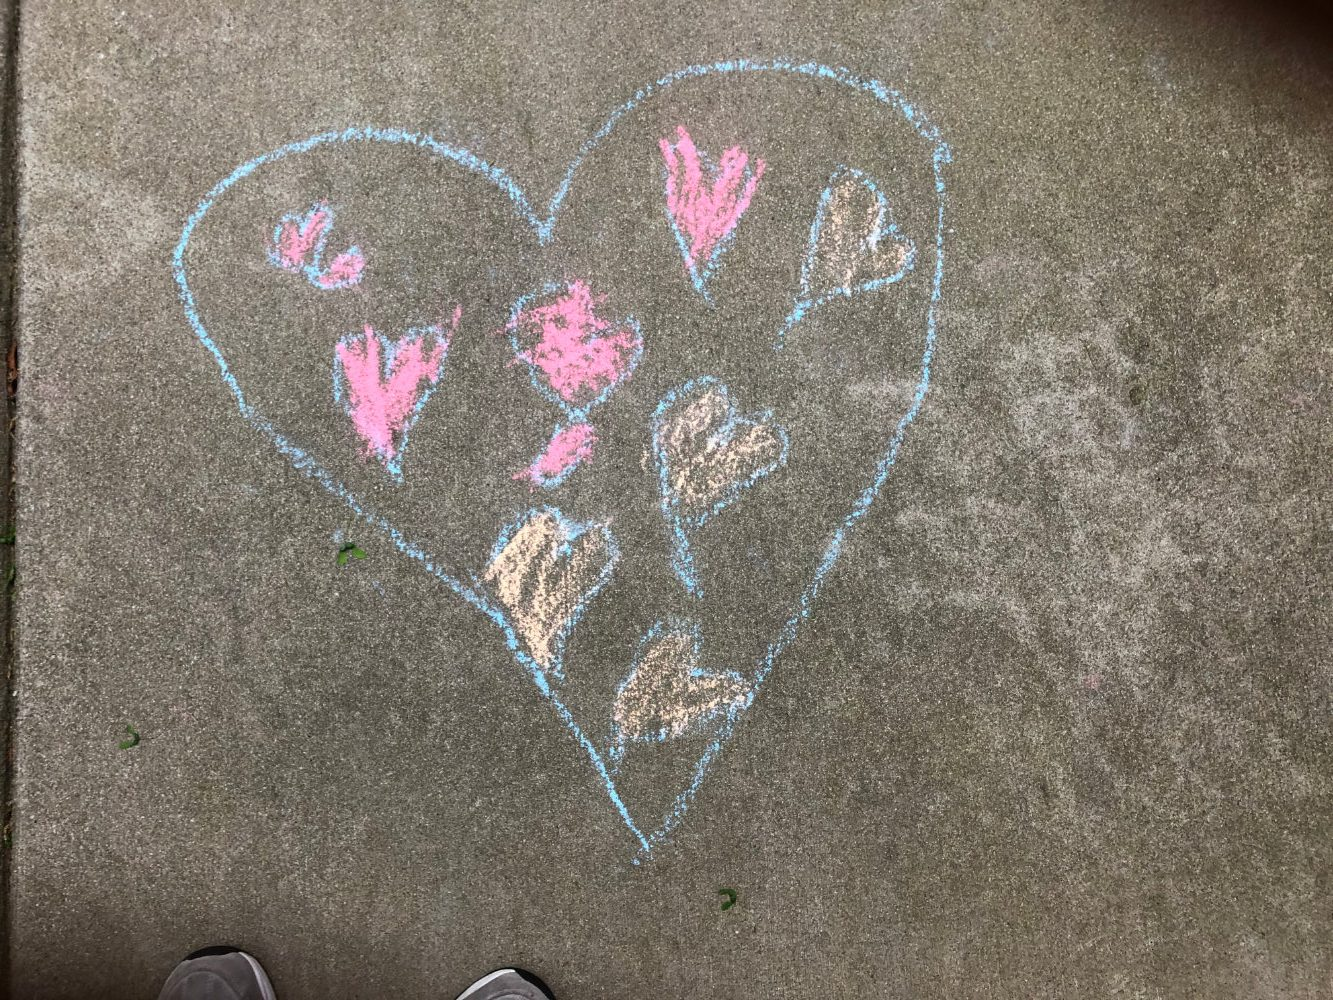 A chalk drawing of a heart